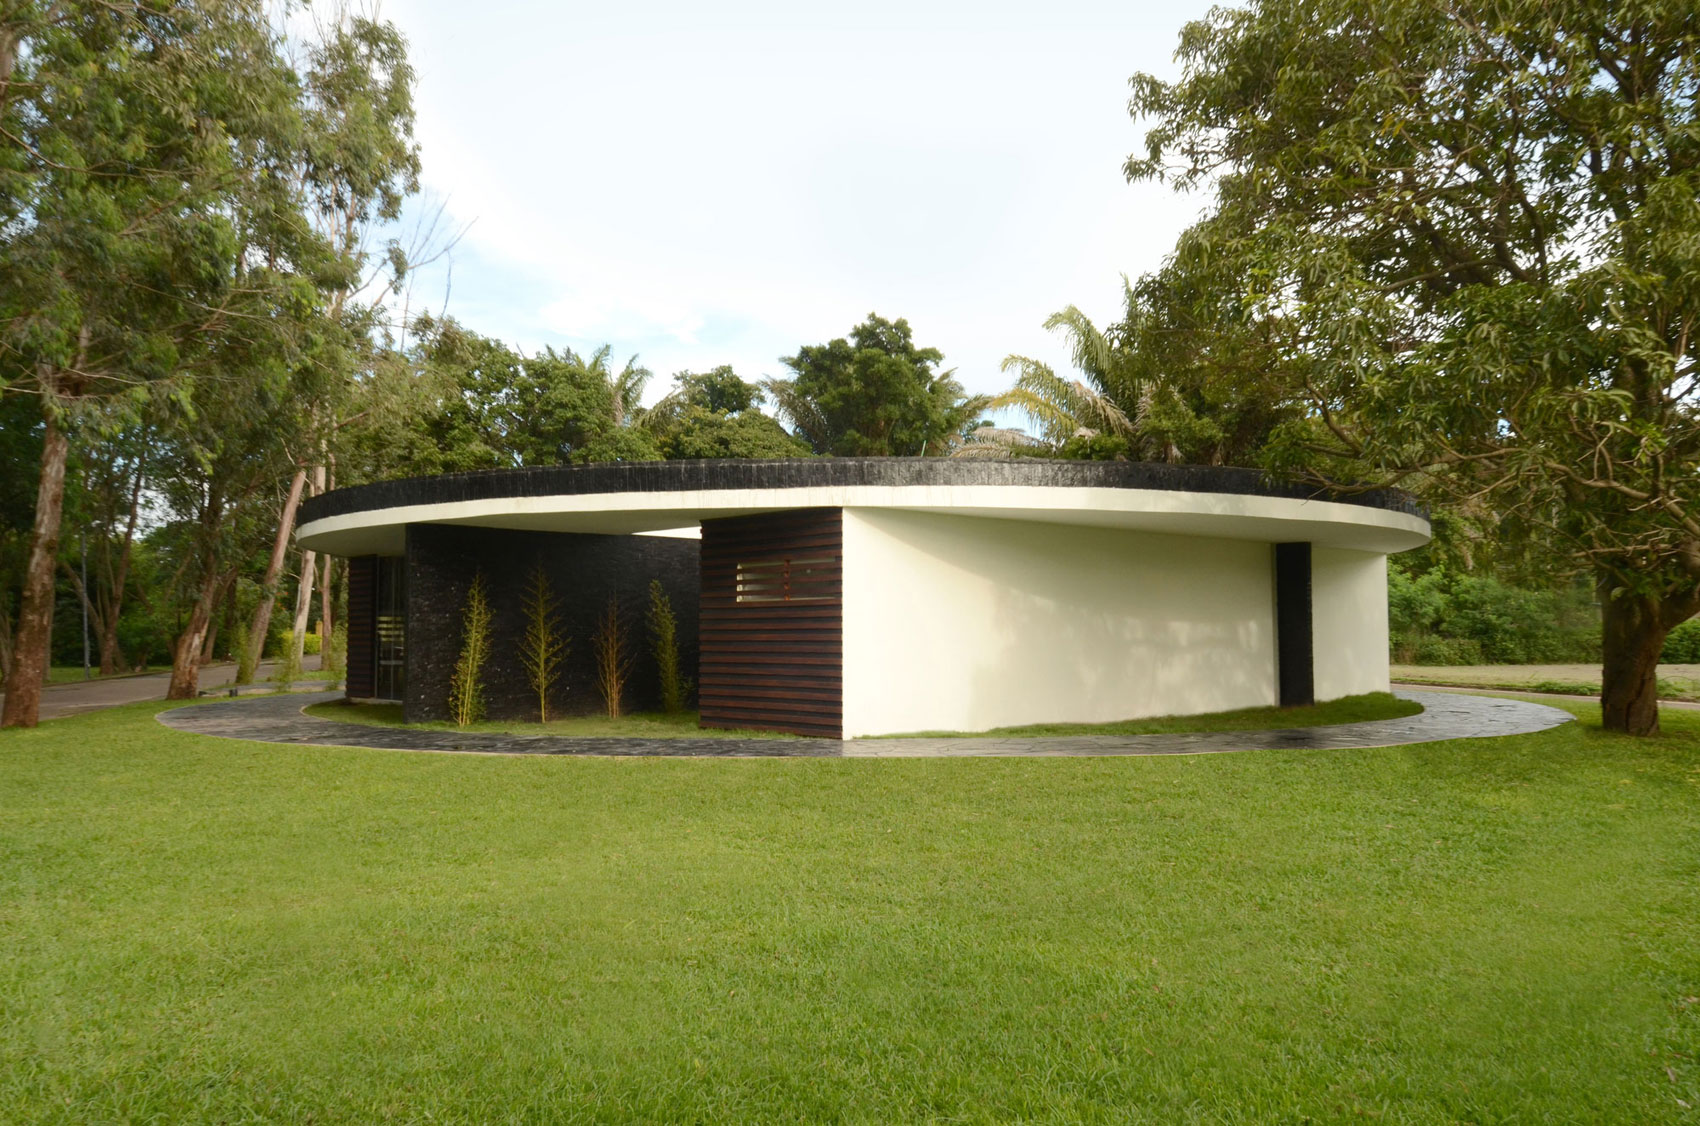 Chinese Coin House by Juan Carlos Menacho (1)